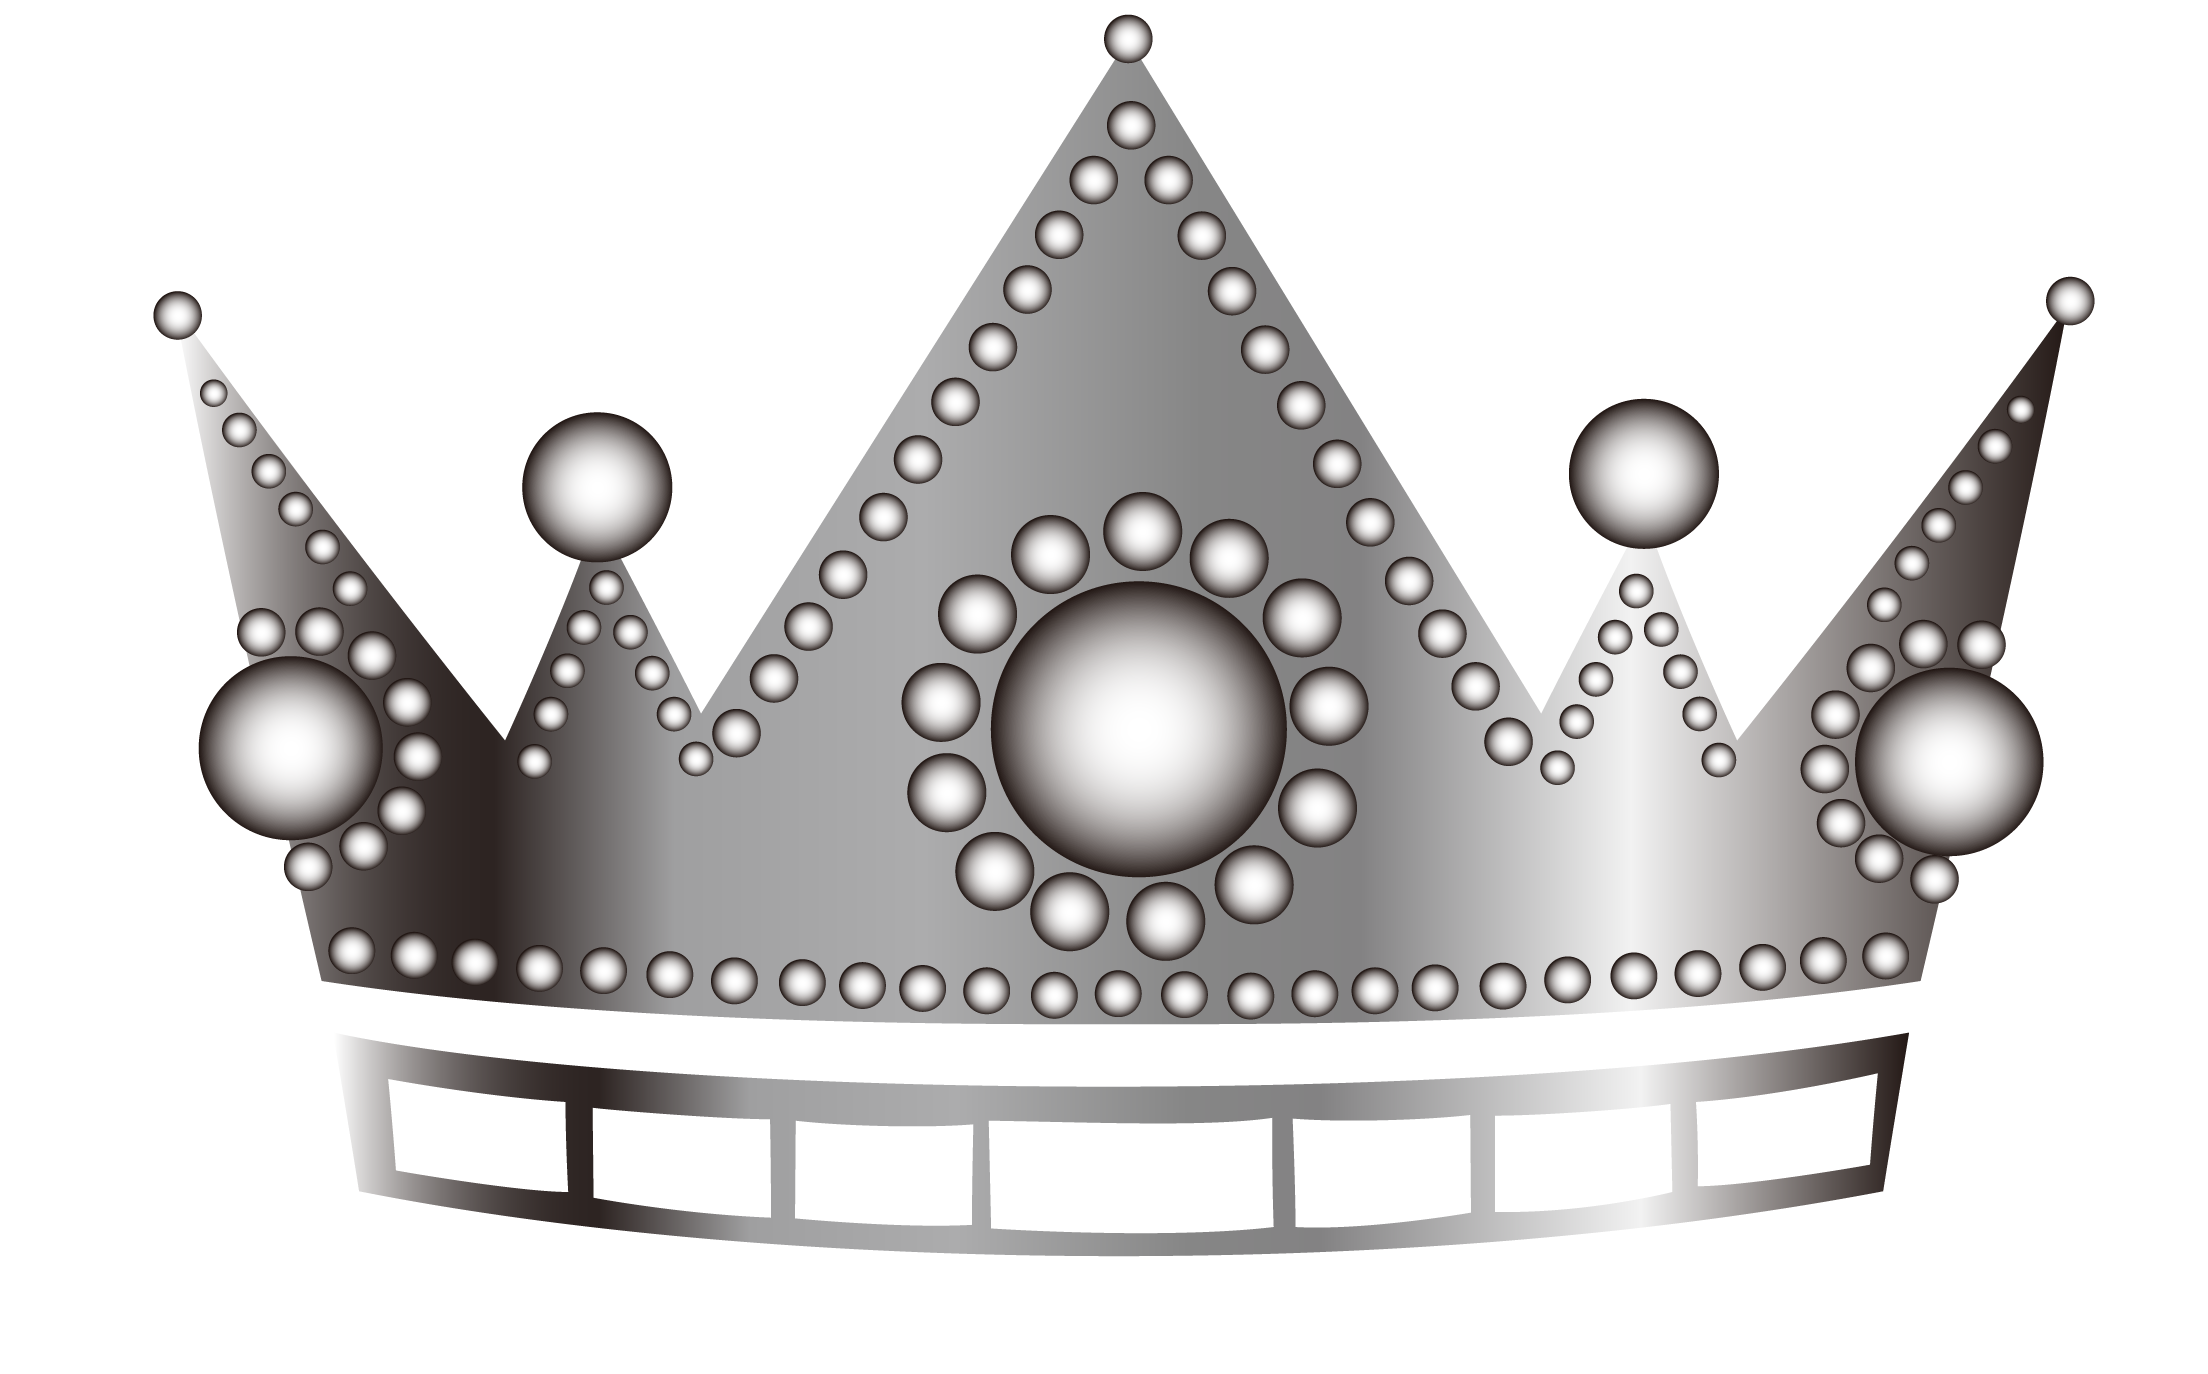 Silver crown free clipart picture transparent Black and white Pattern - Cartoon silver crown 2208*1374 transprent ... picture transparent